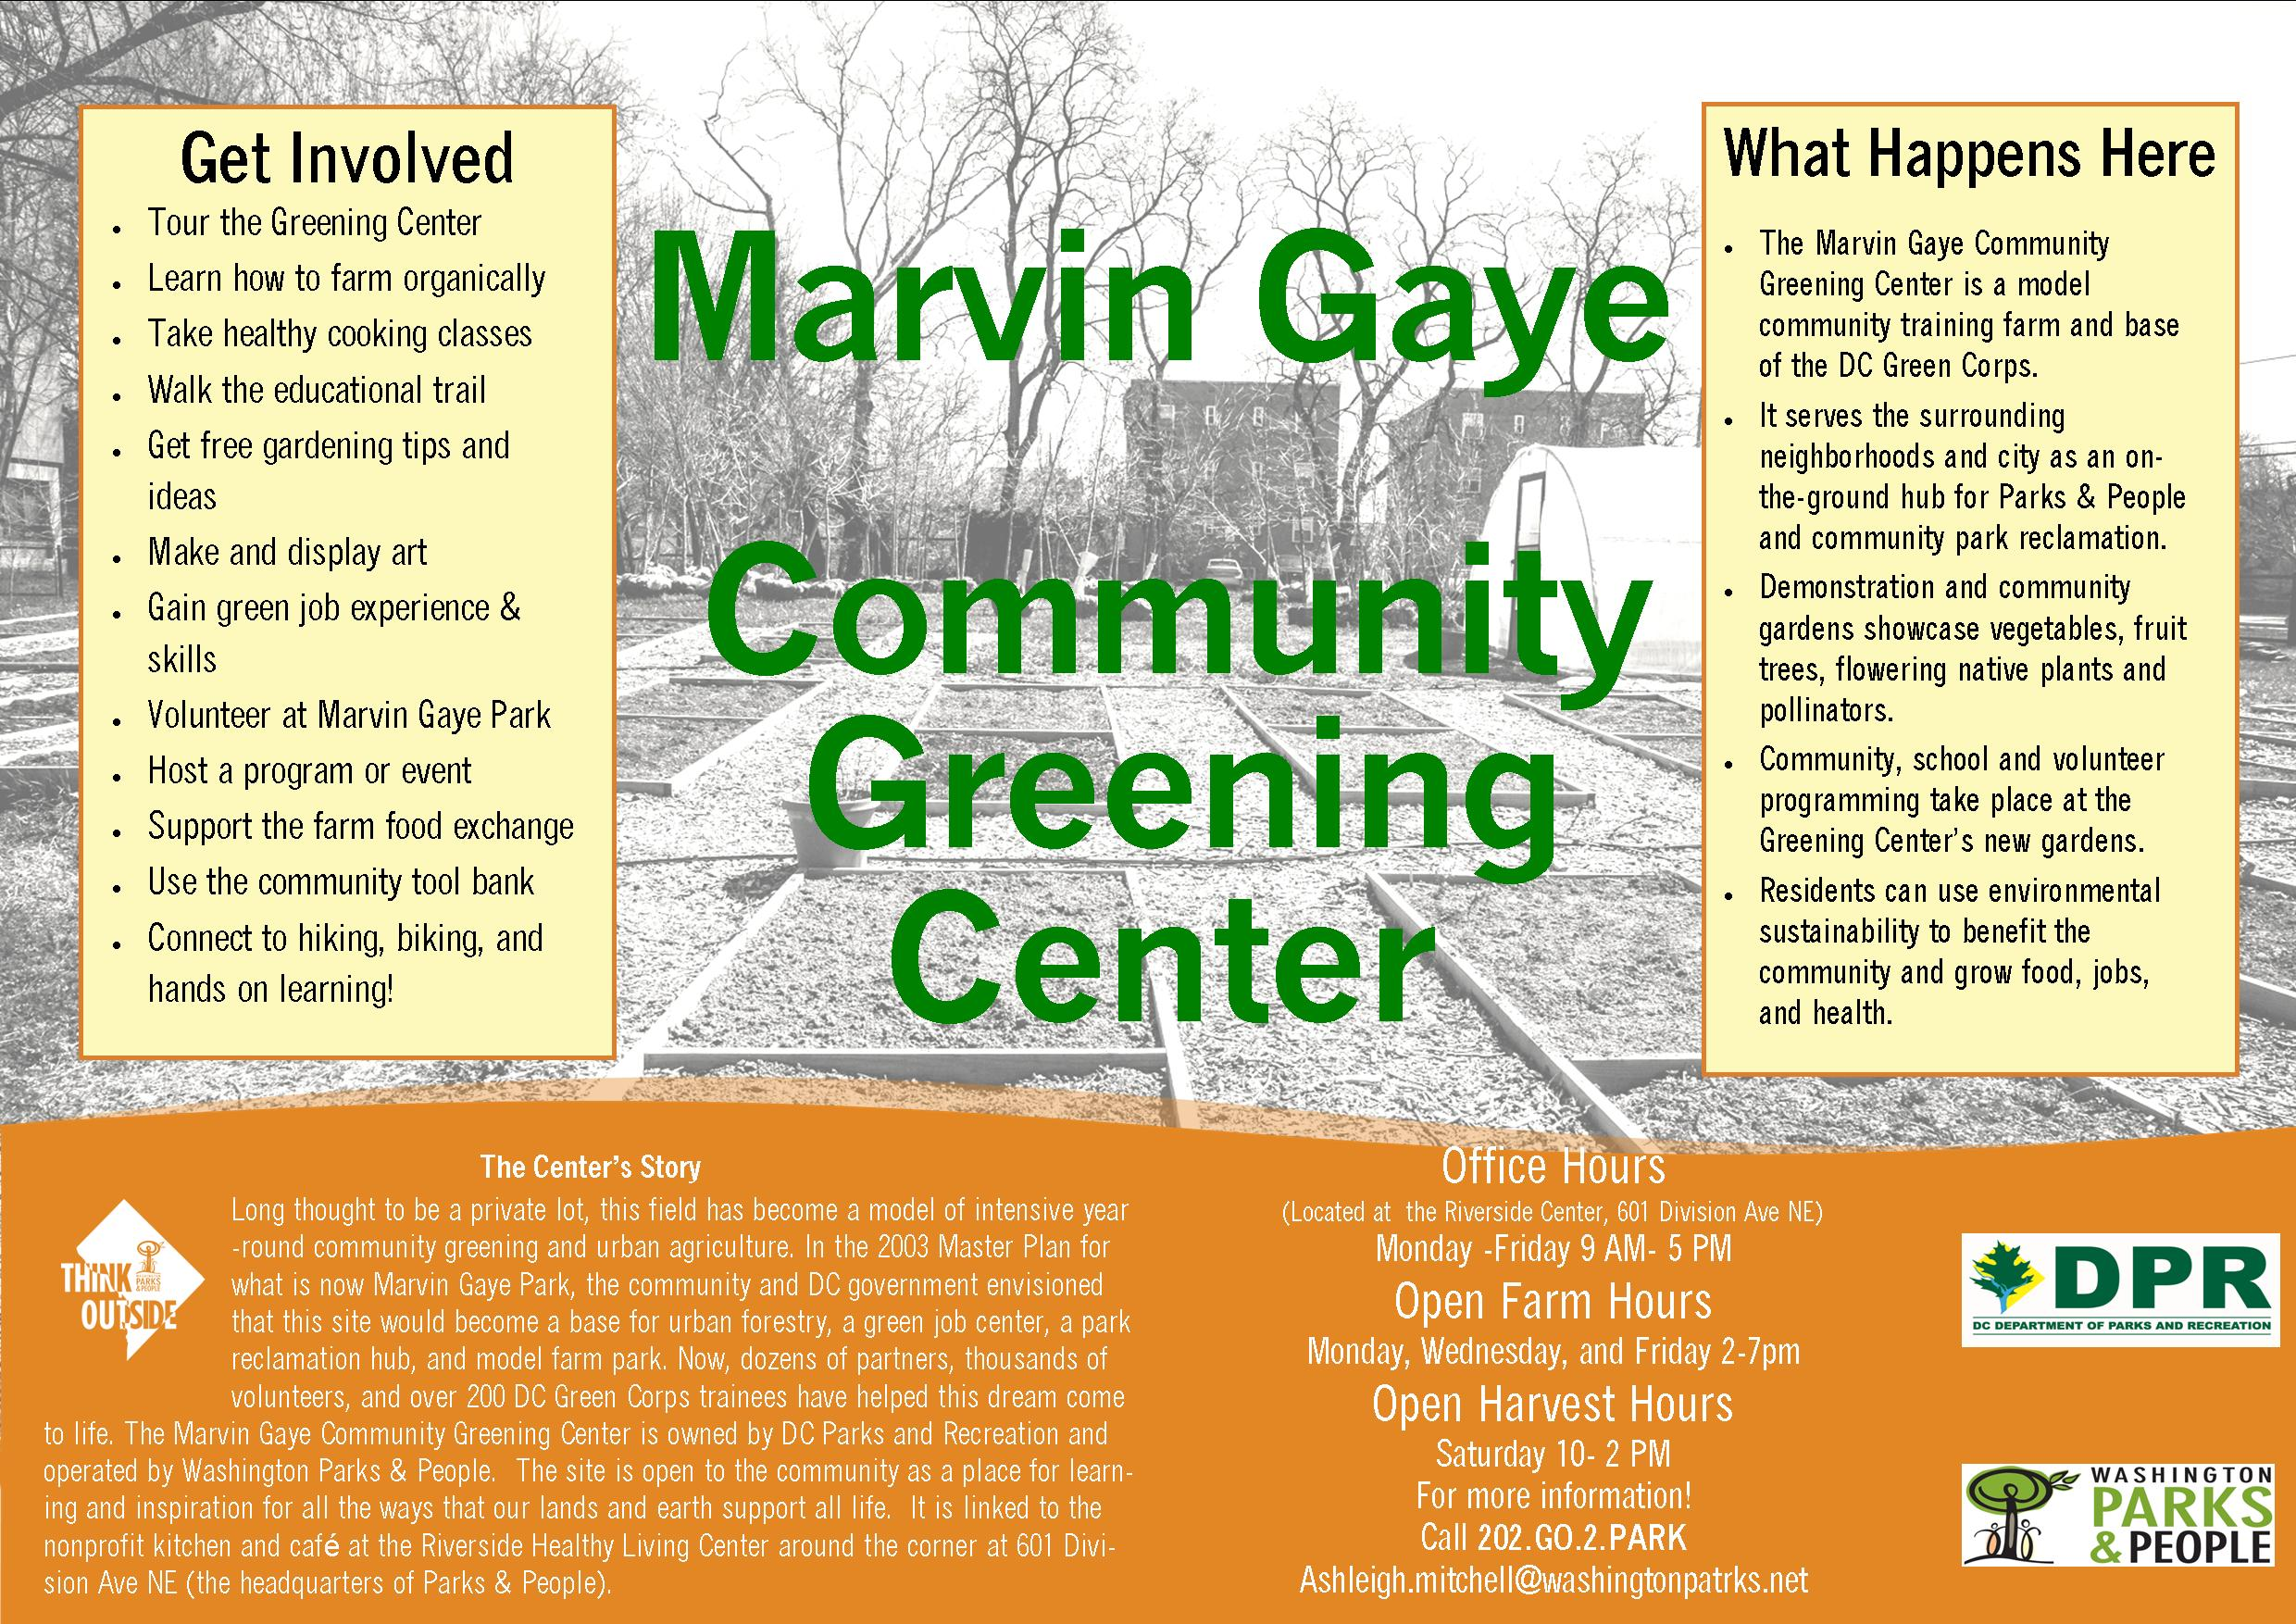 Interested in joining Parks & People's Community Harvest Network? Call us at 202-462-7275.